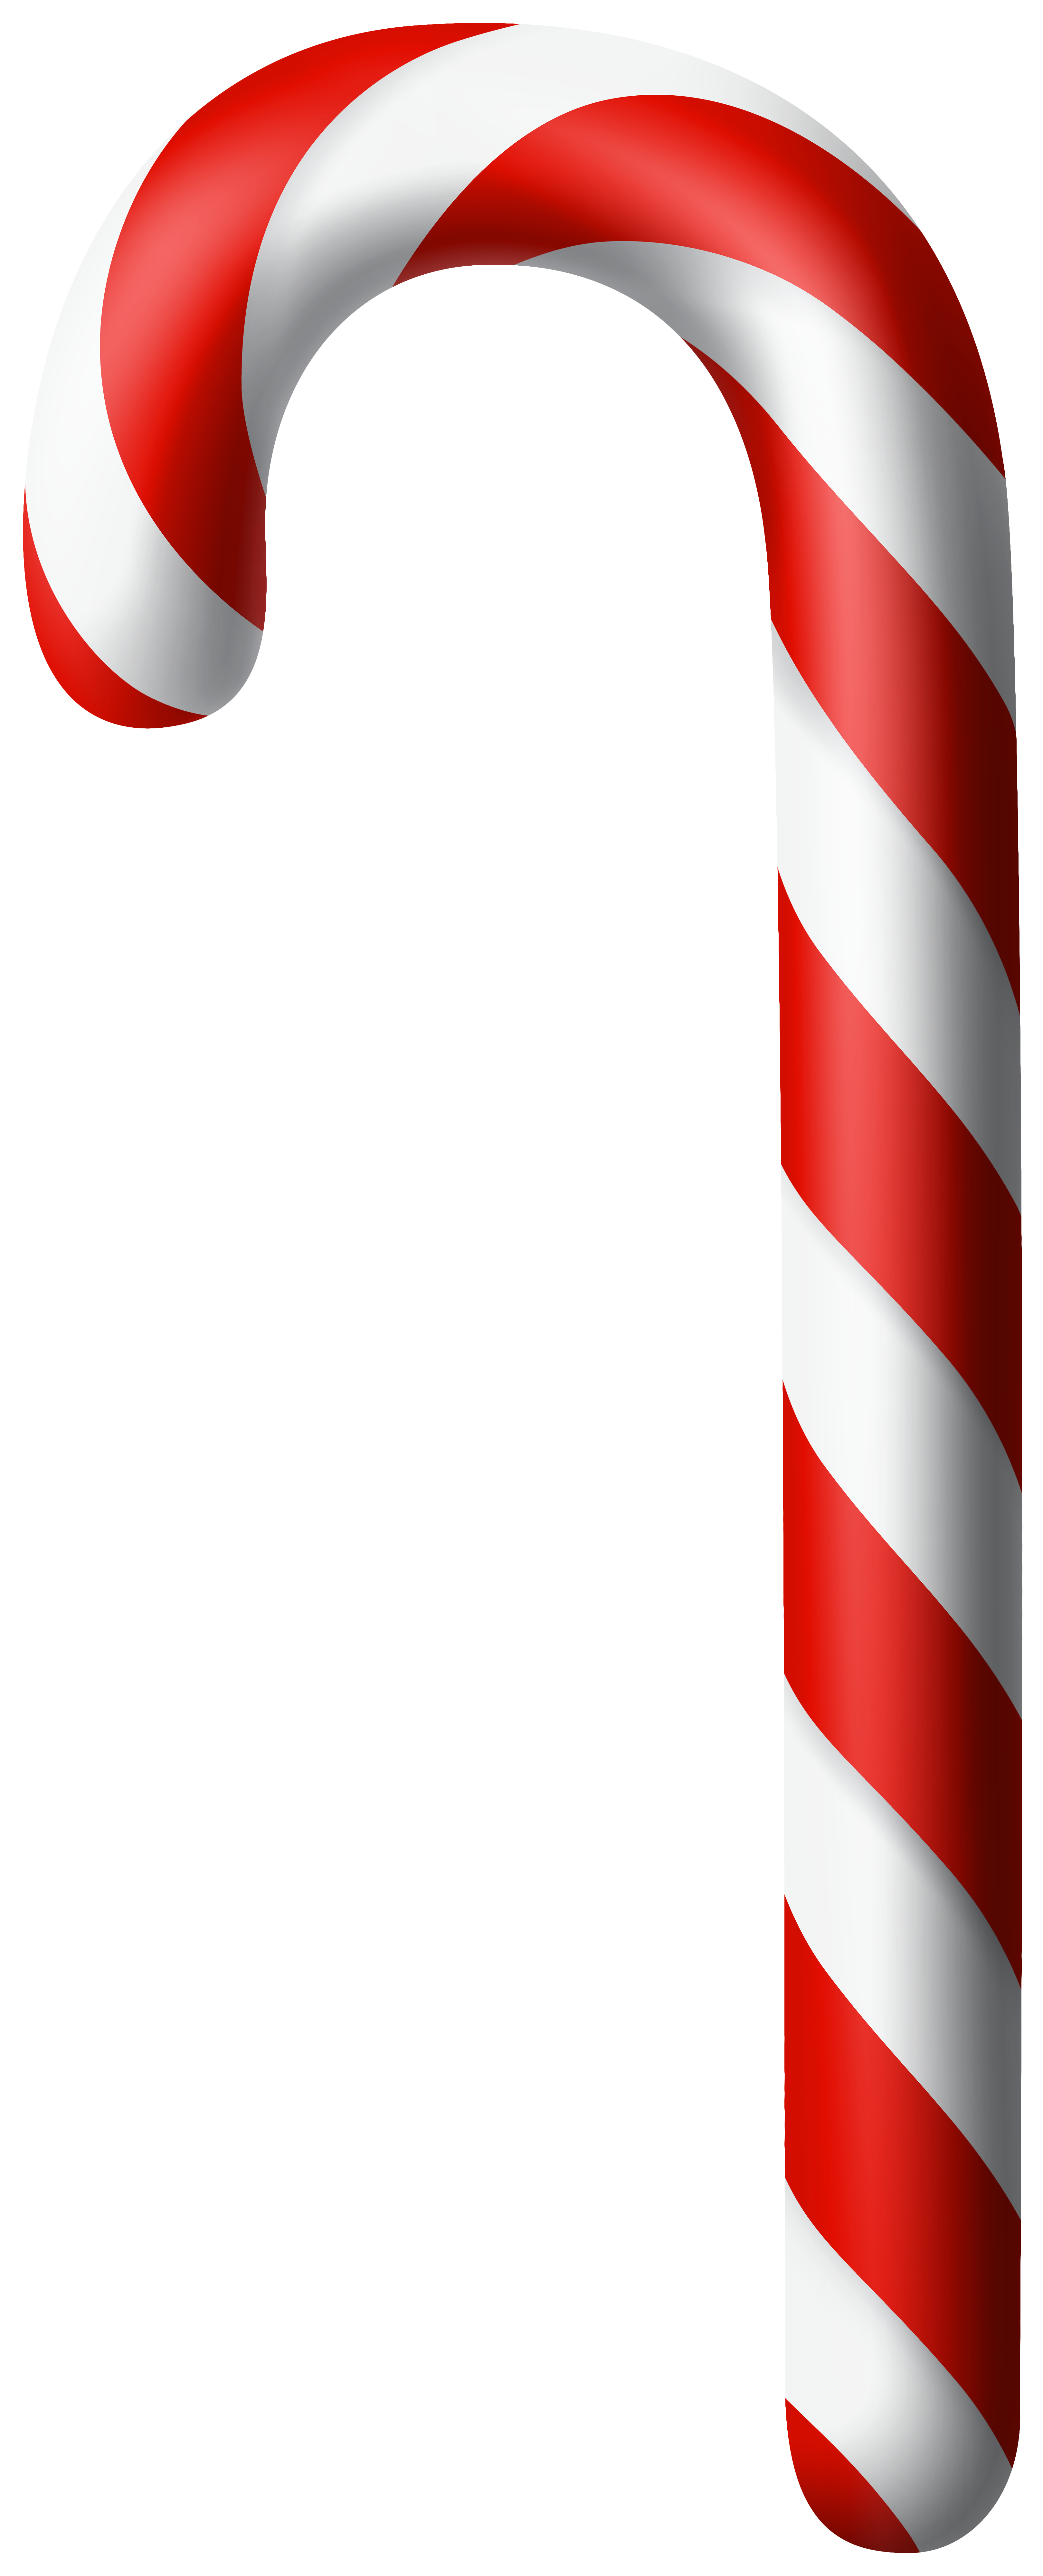 Xmas Candy Cane Png Clipart Gallery Yopriceville High Quality Images And Transparent Png Free Clipa Candy Cane Coloring Page Candy Cane Candy Cane Science